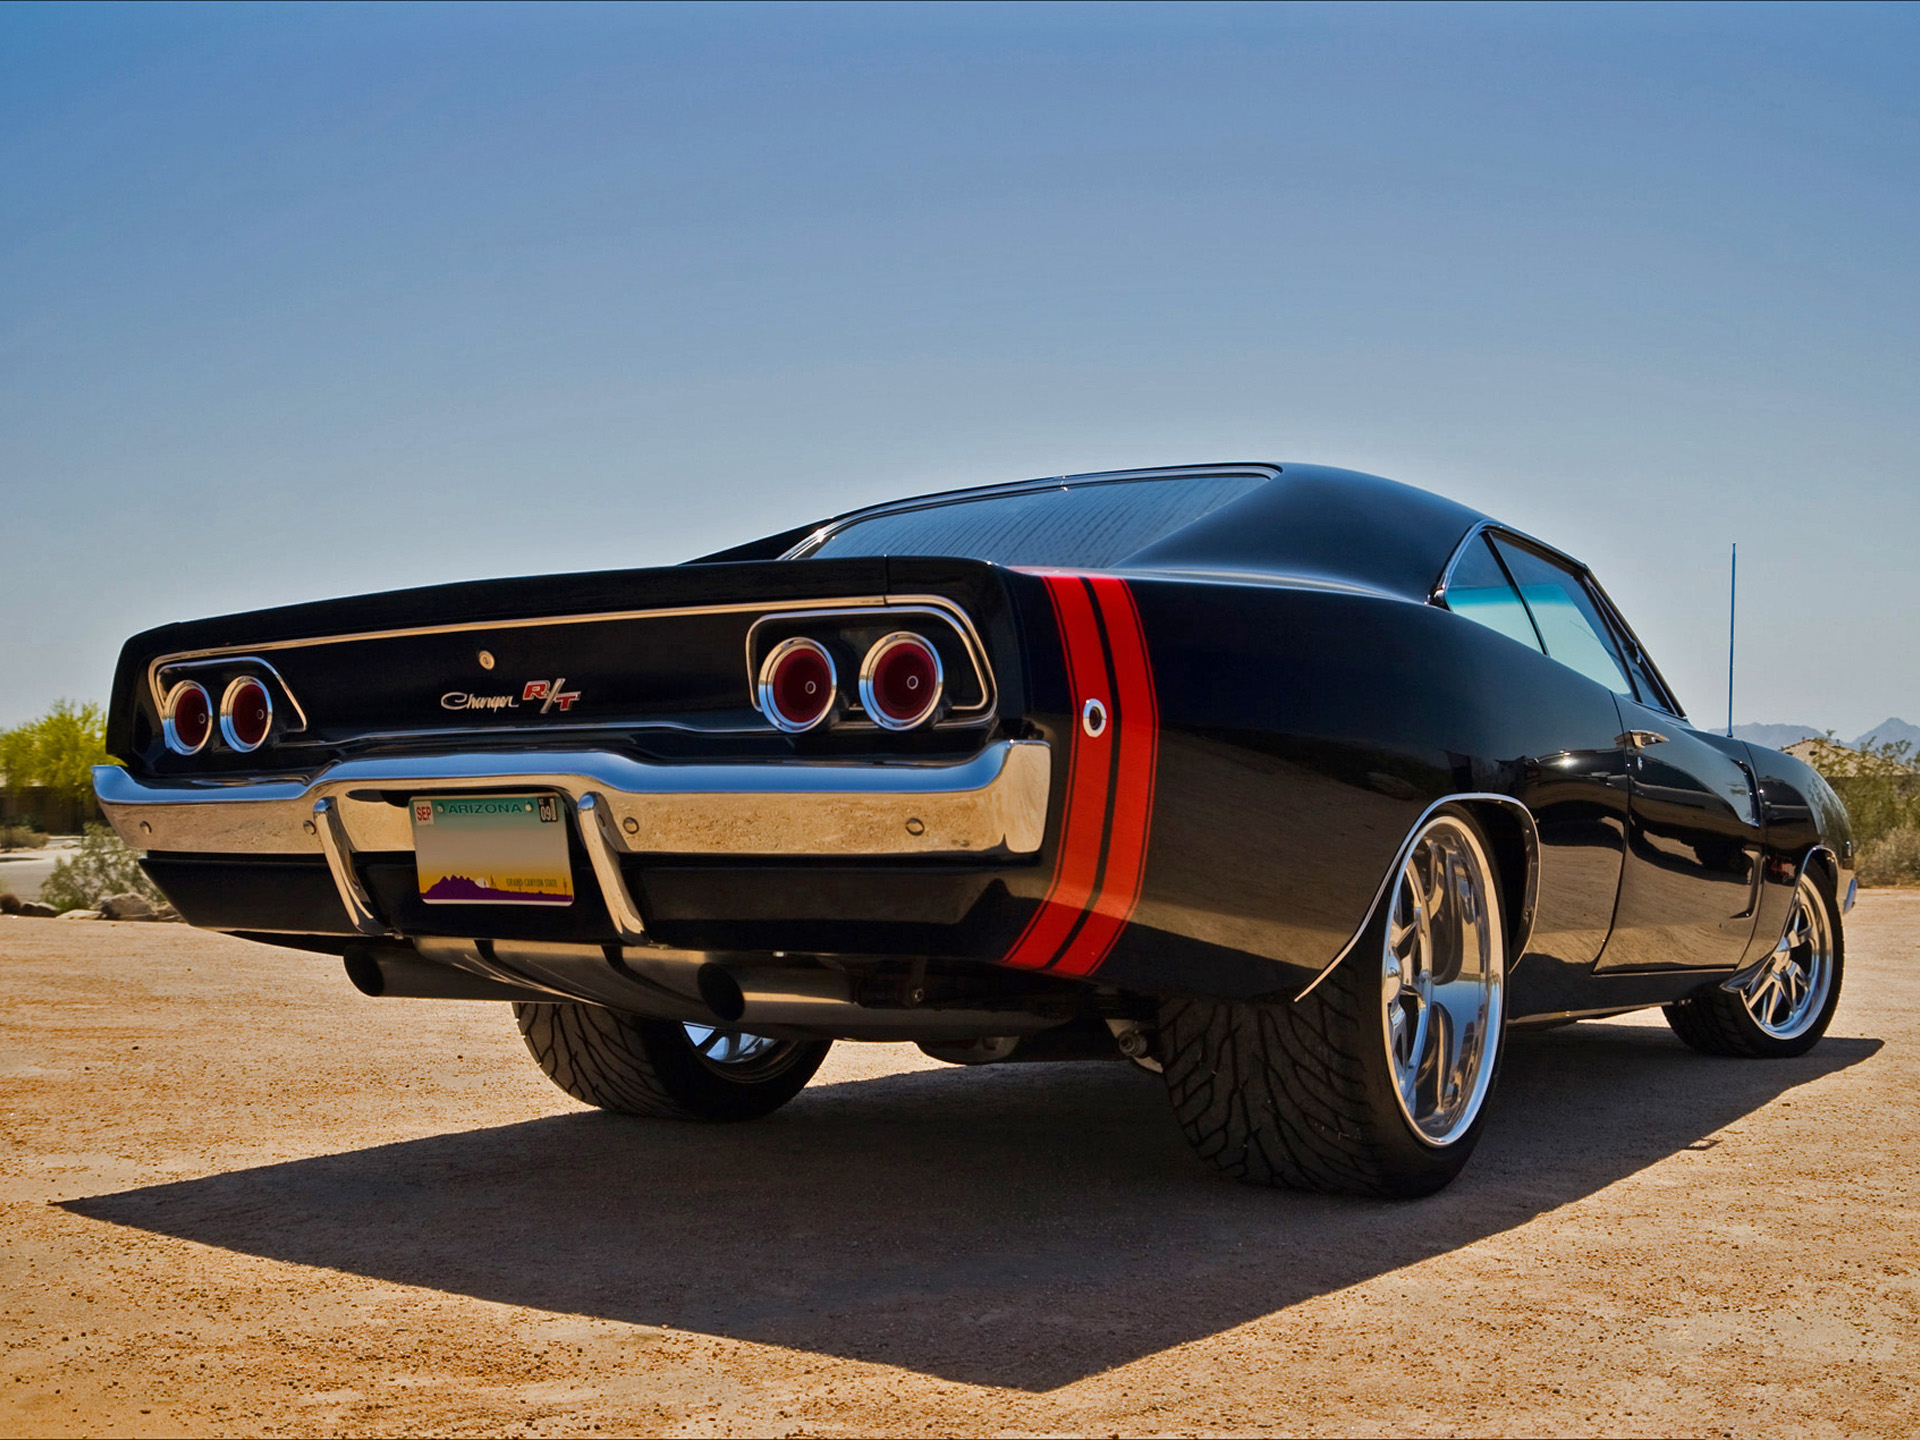 Pictures Muscle cars wallpapers on your desktop computer to download 1920x1440